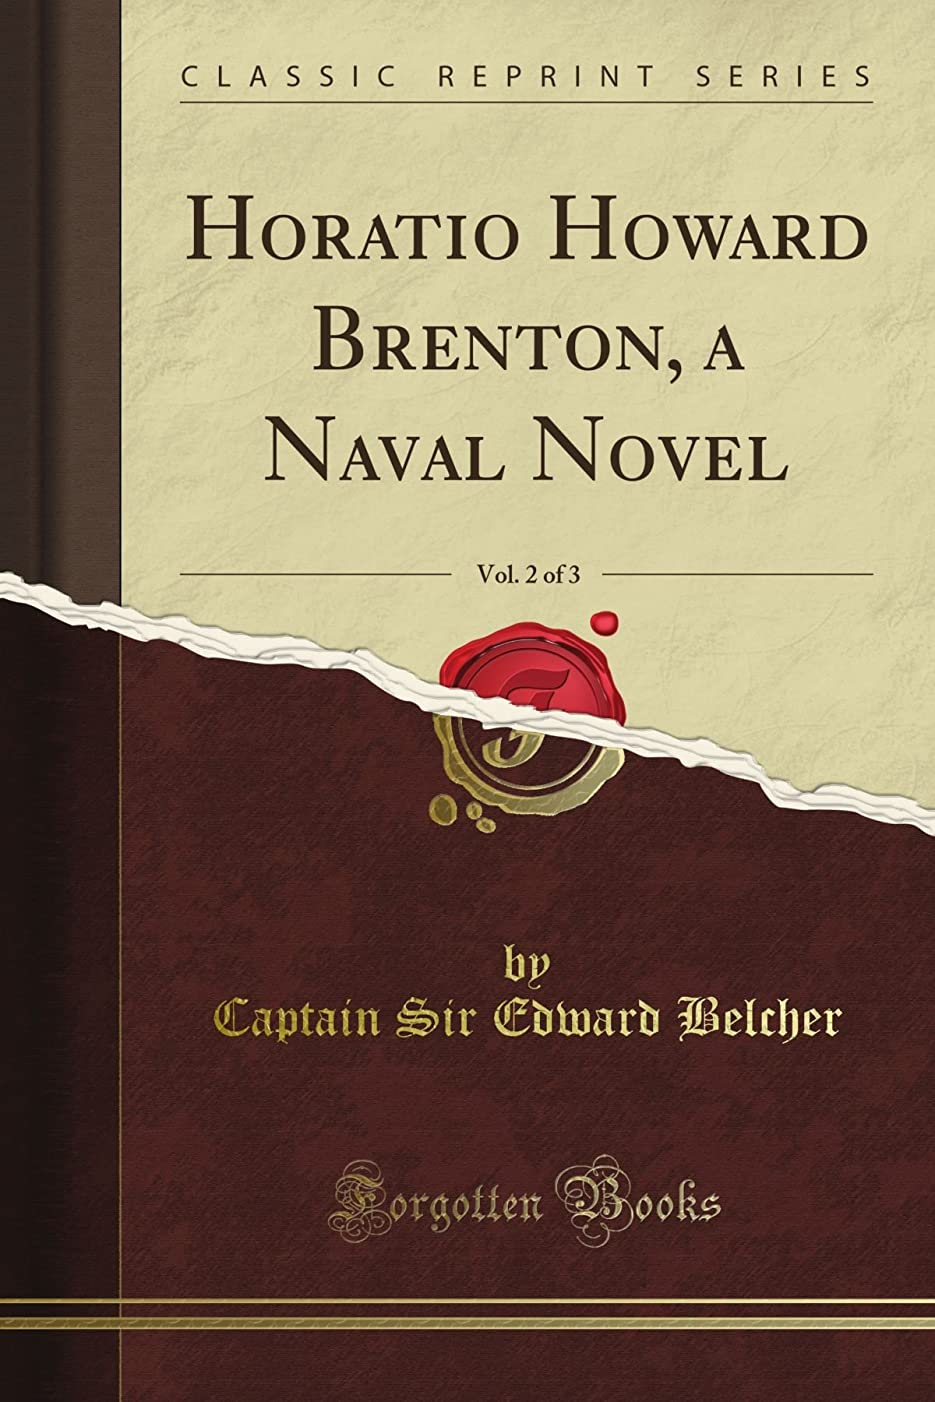 復讐首尾一貫した楽しいHoratio Howard Brenton, a Naval Novel, Vol. 2 of 3 (Classic Reprint)